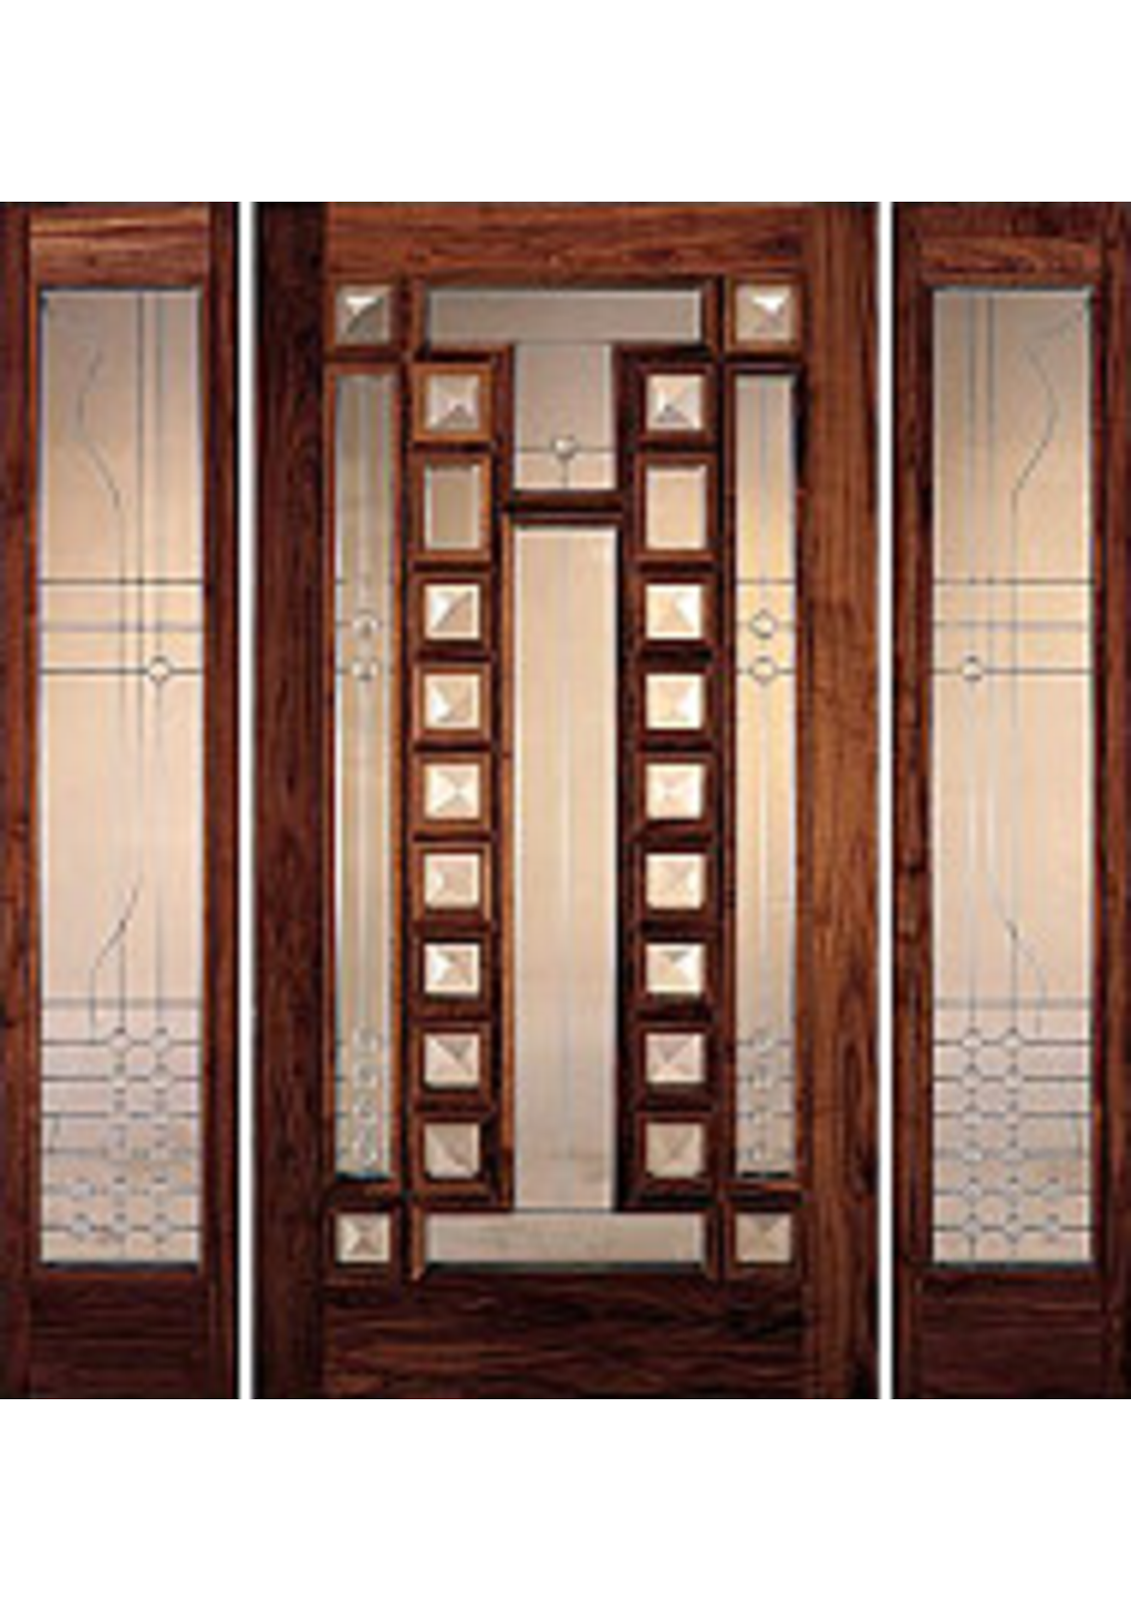 Foundation dezin decor doors design for Door design india